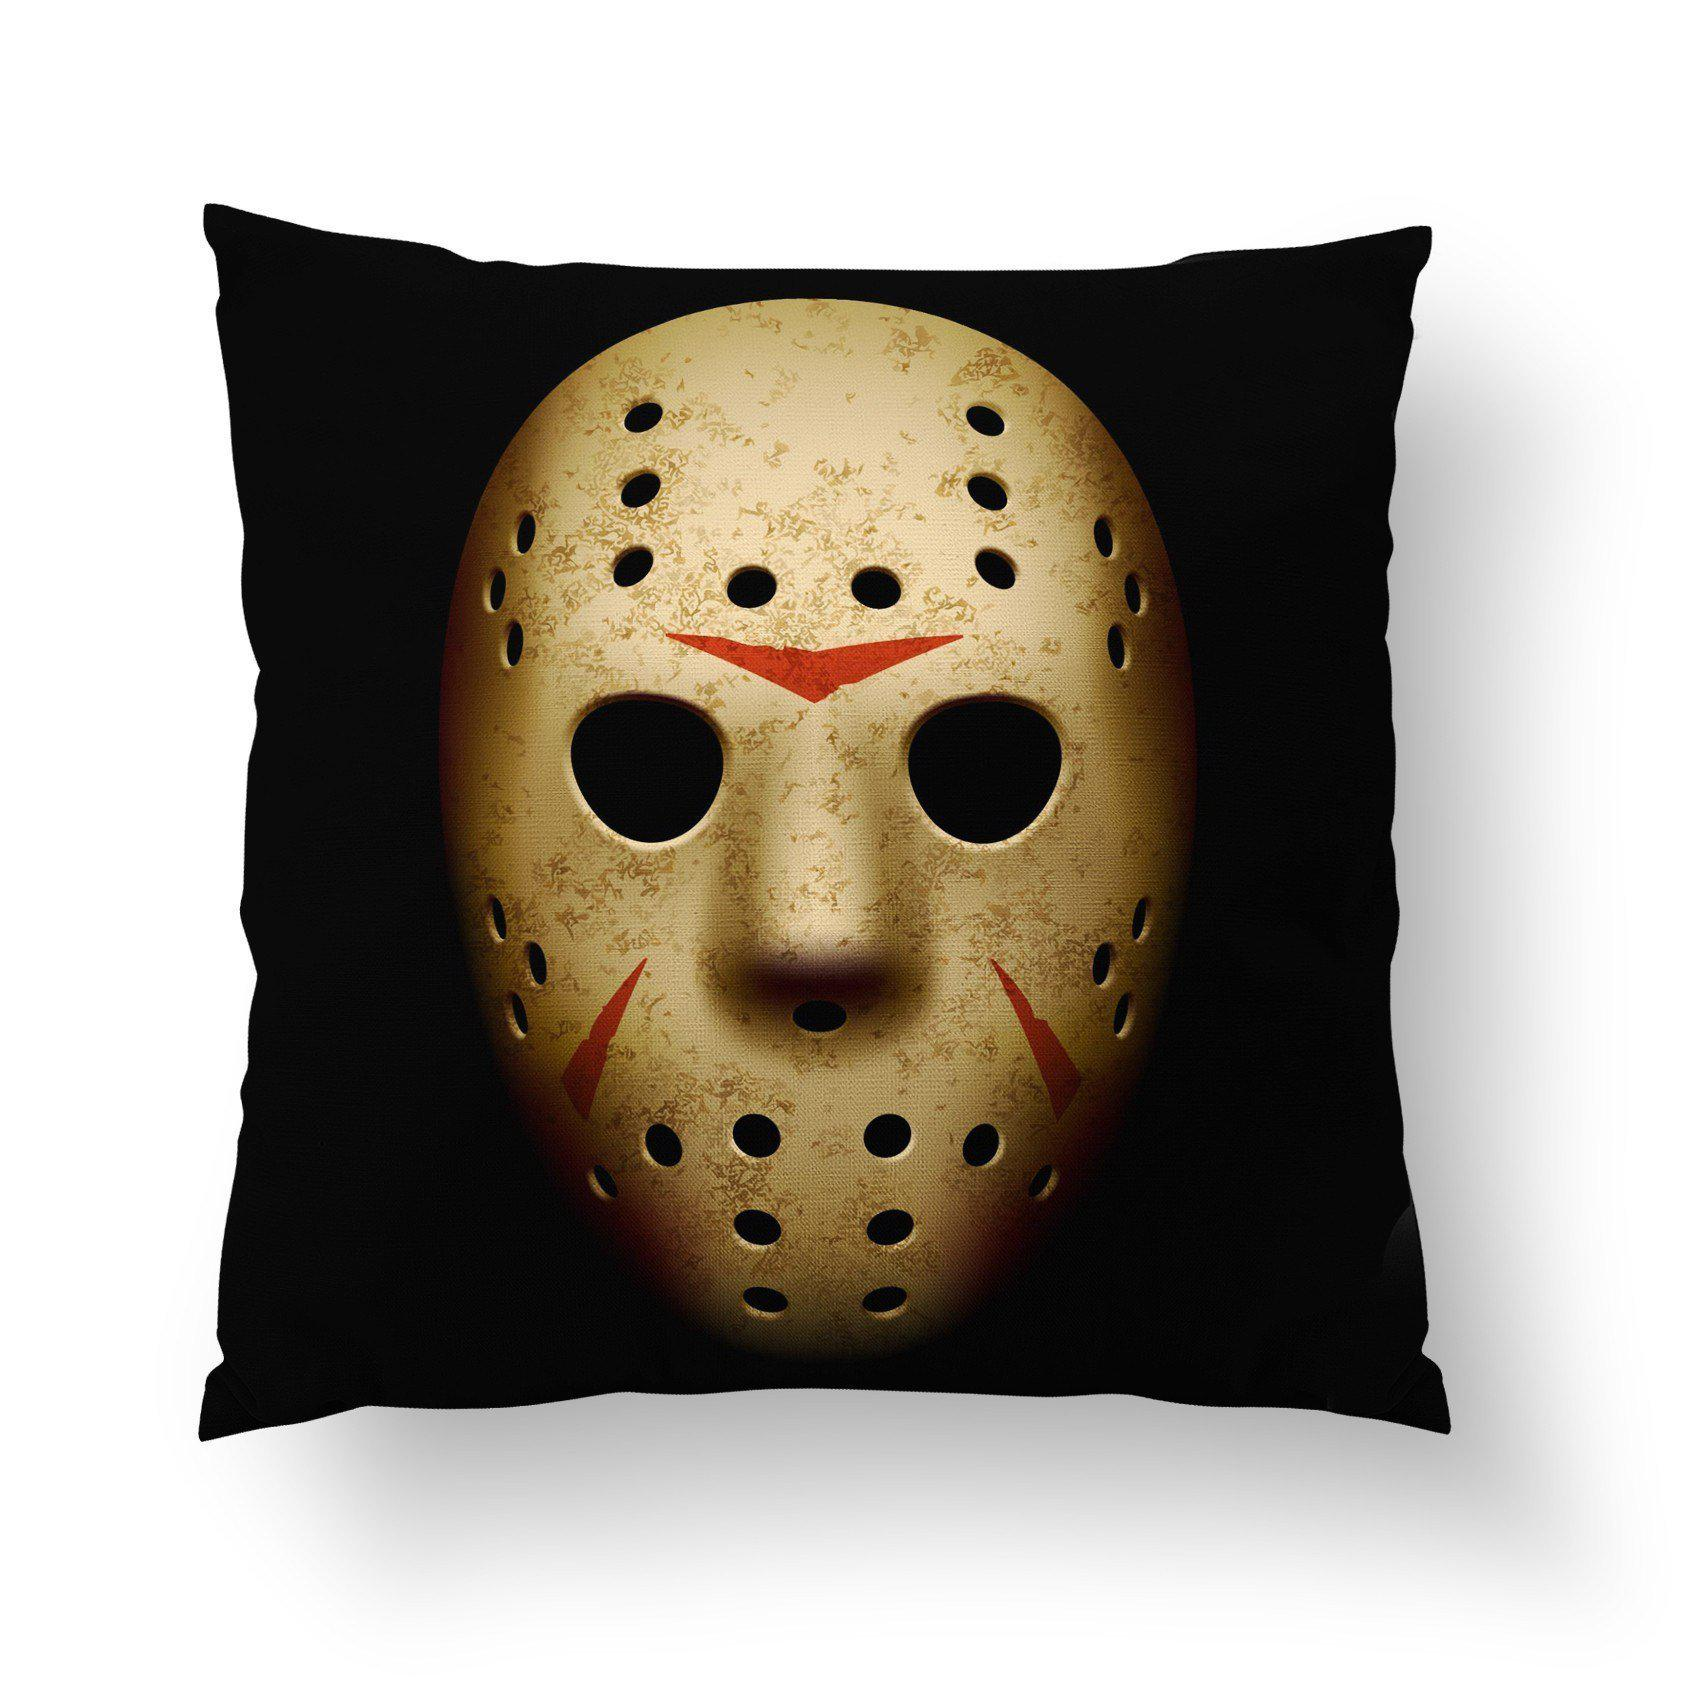 Horror Movie Pillow - Pillow Covers - W.FRANCIS